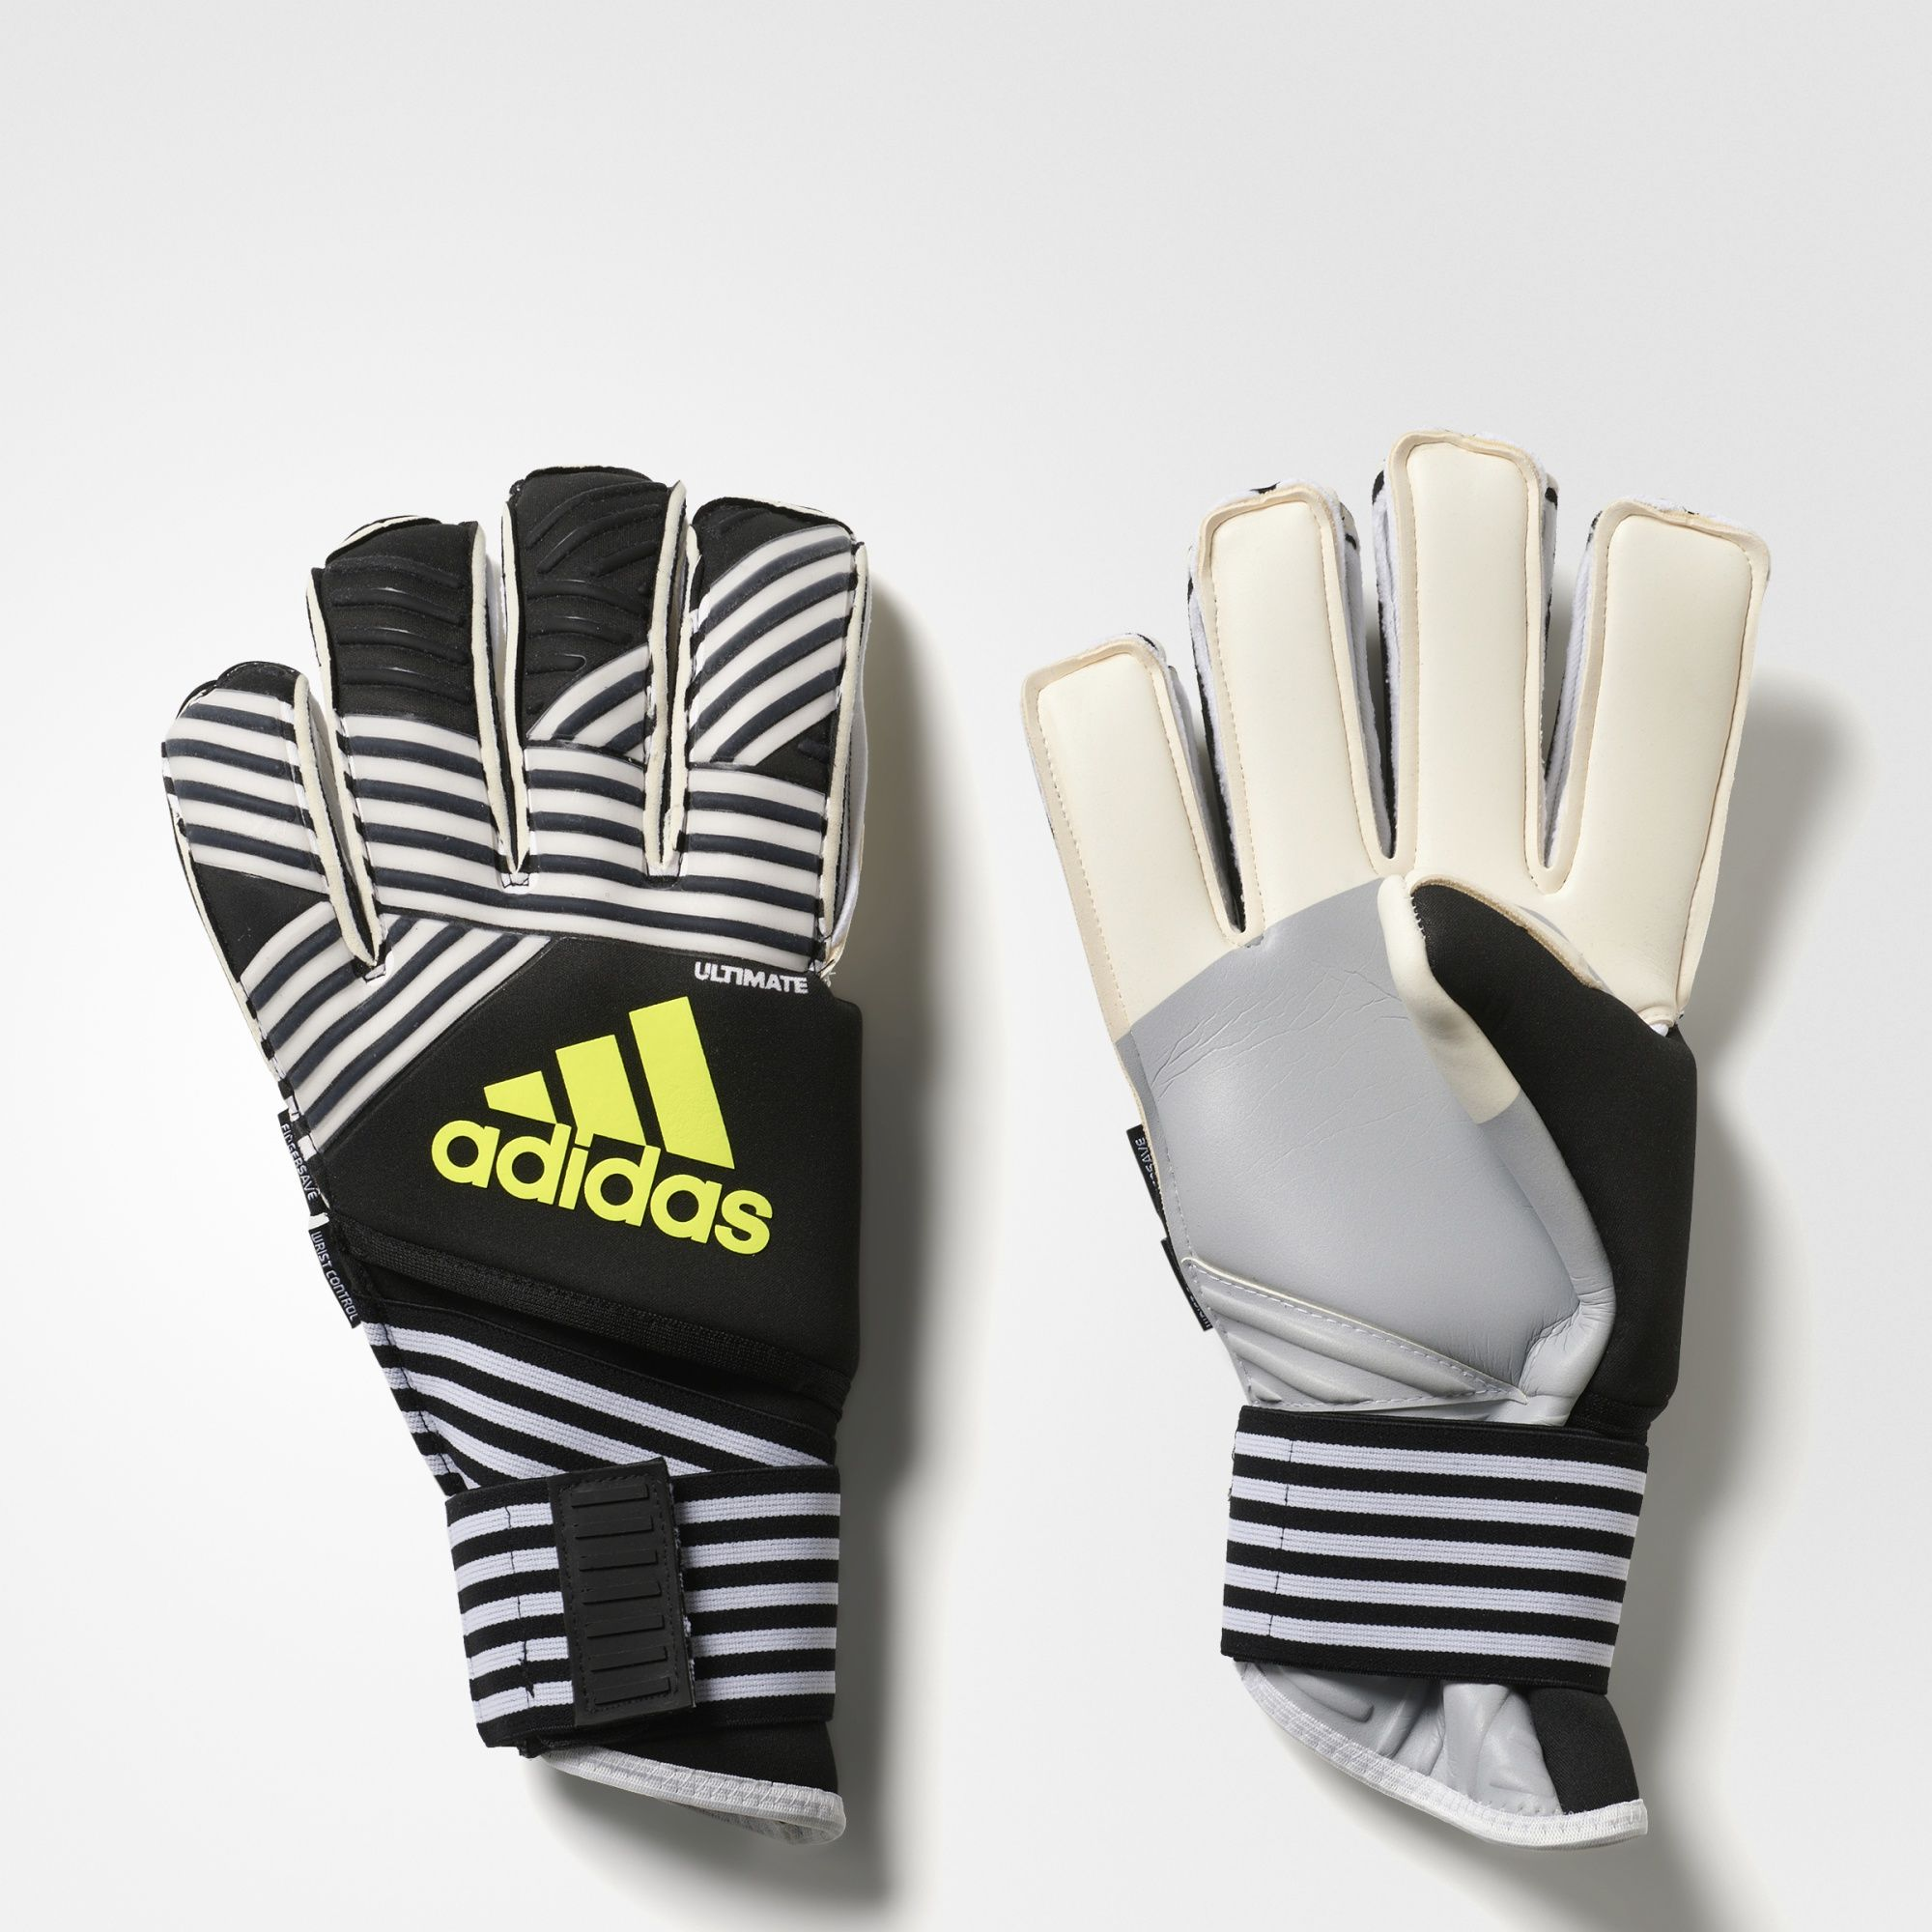 sports shoes 626ad 3ccdf adidas Ace Trans Ultimate Goalie Gloves-Black/Wht